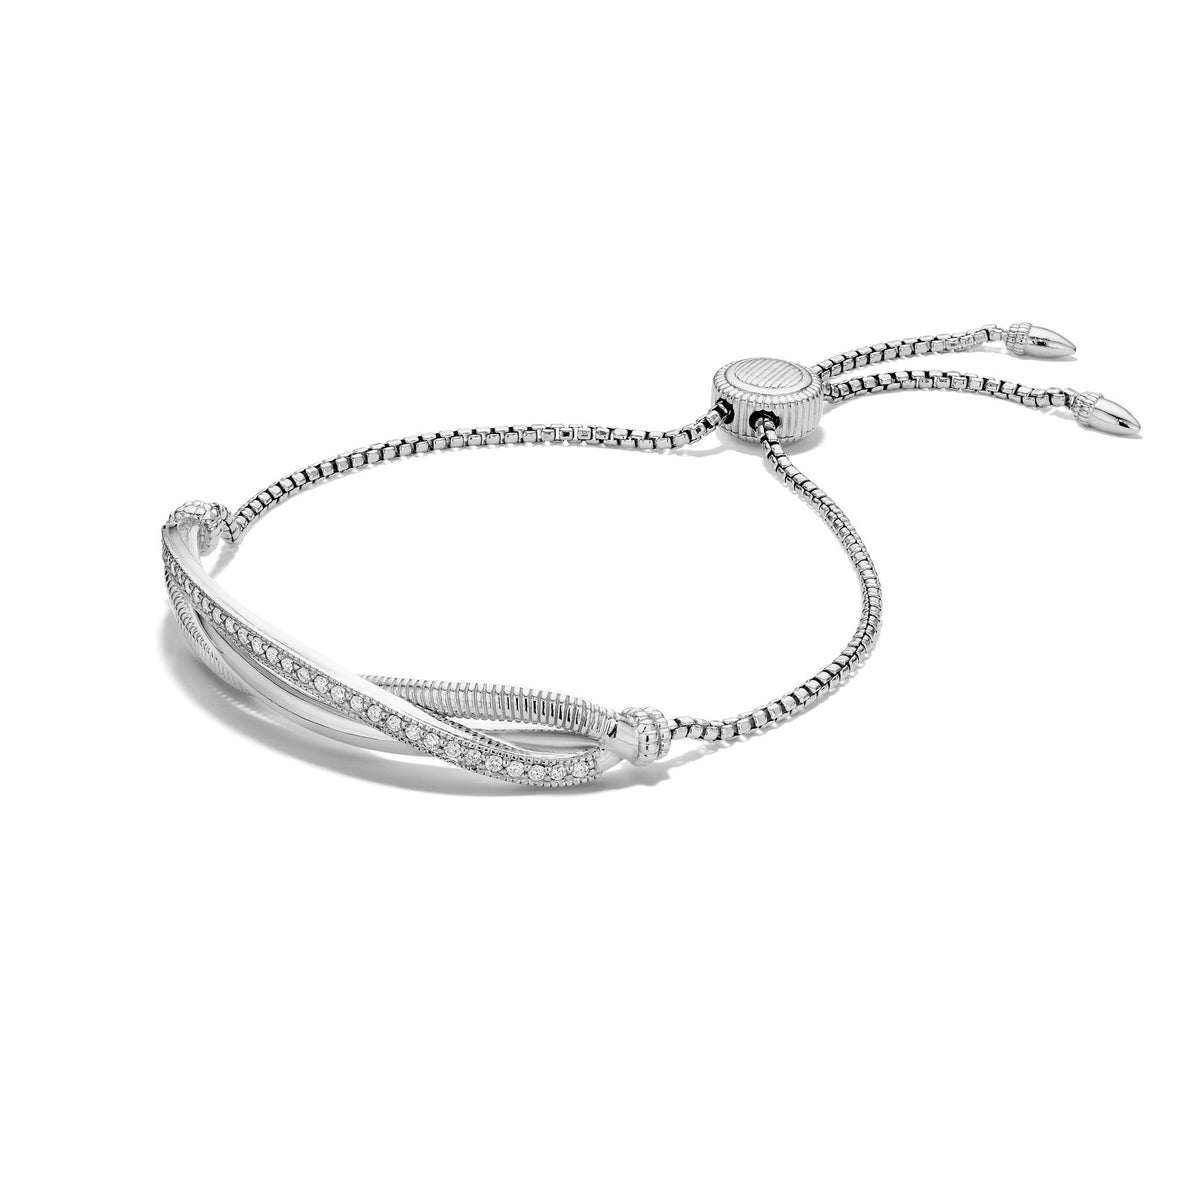 Eternity Friendship Bracelet with Diamonds